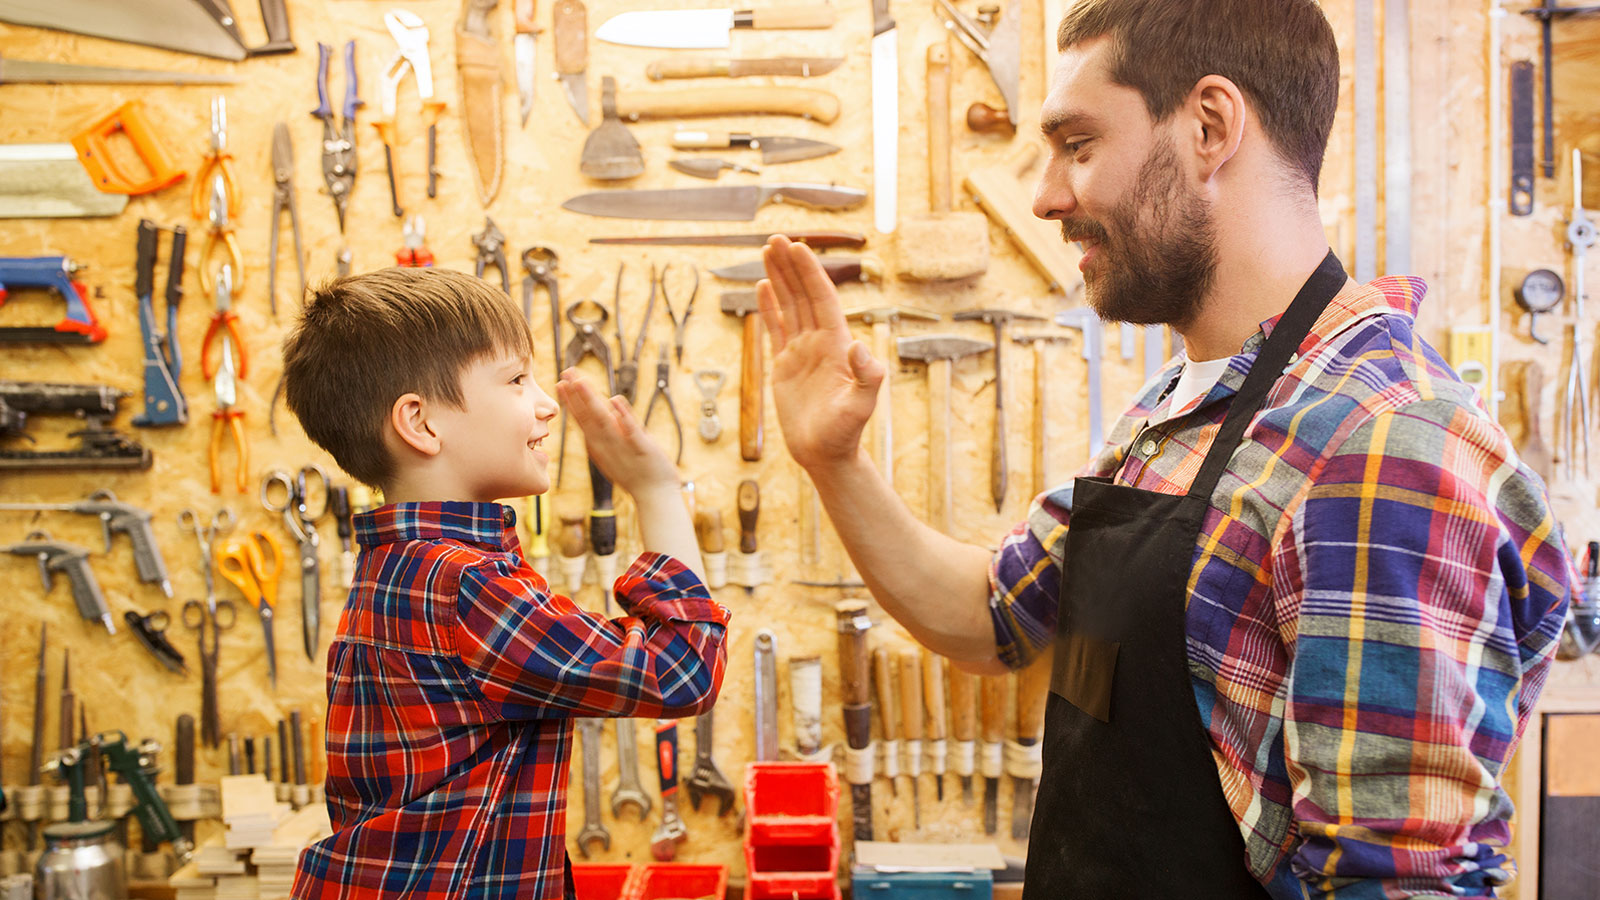 Carpenter father and son making high five at workshop